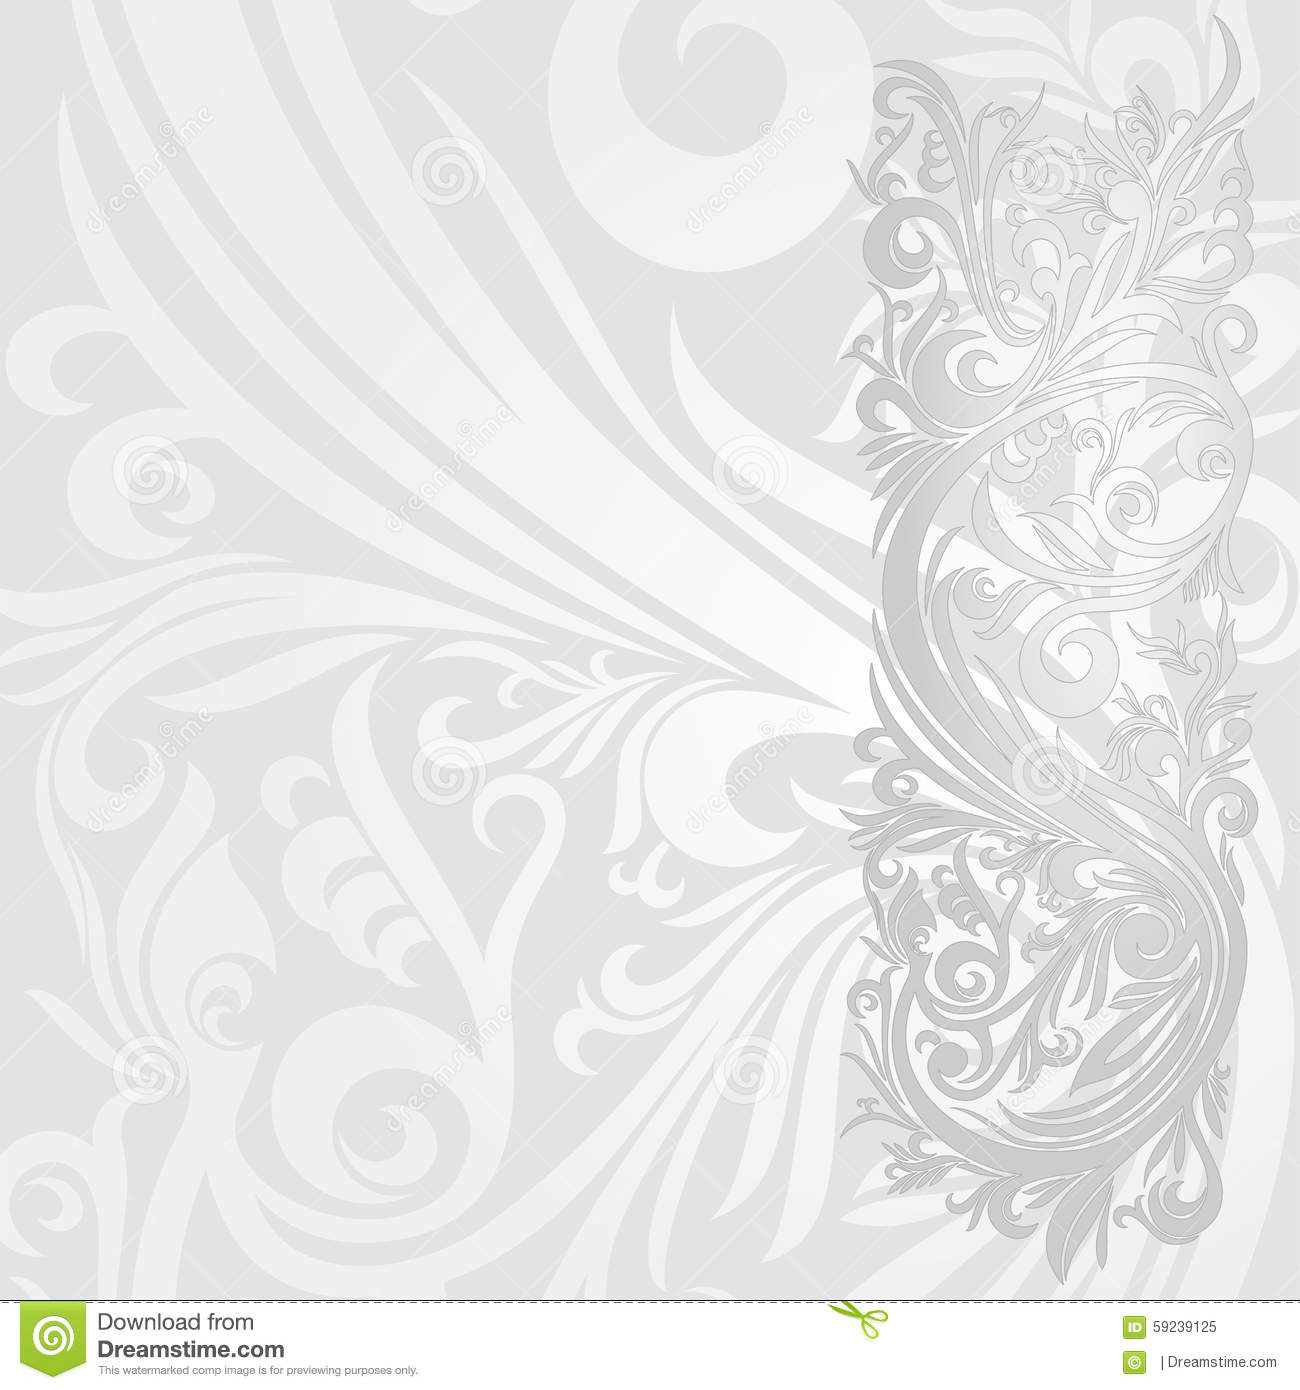 Wallpaper or invitation card silver abstract stock illustration download comp stopboris Image collections